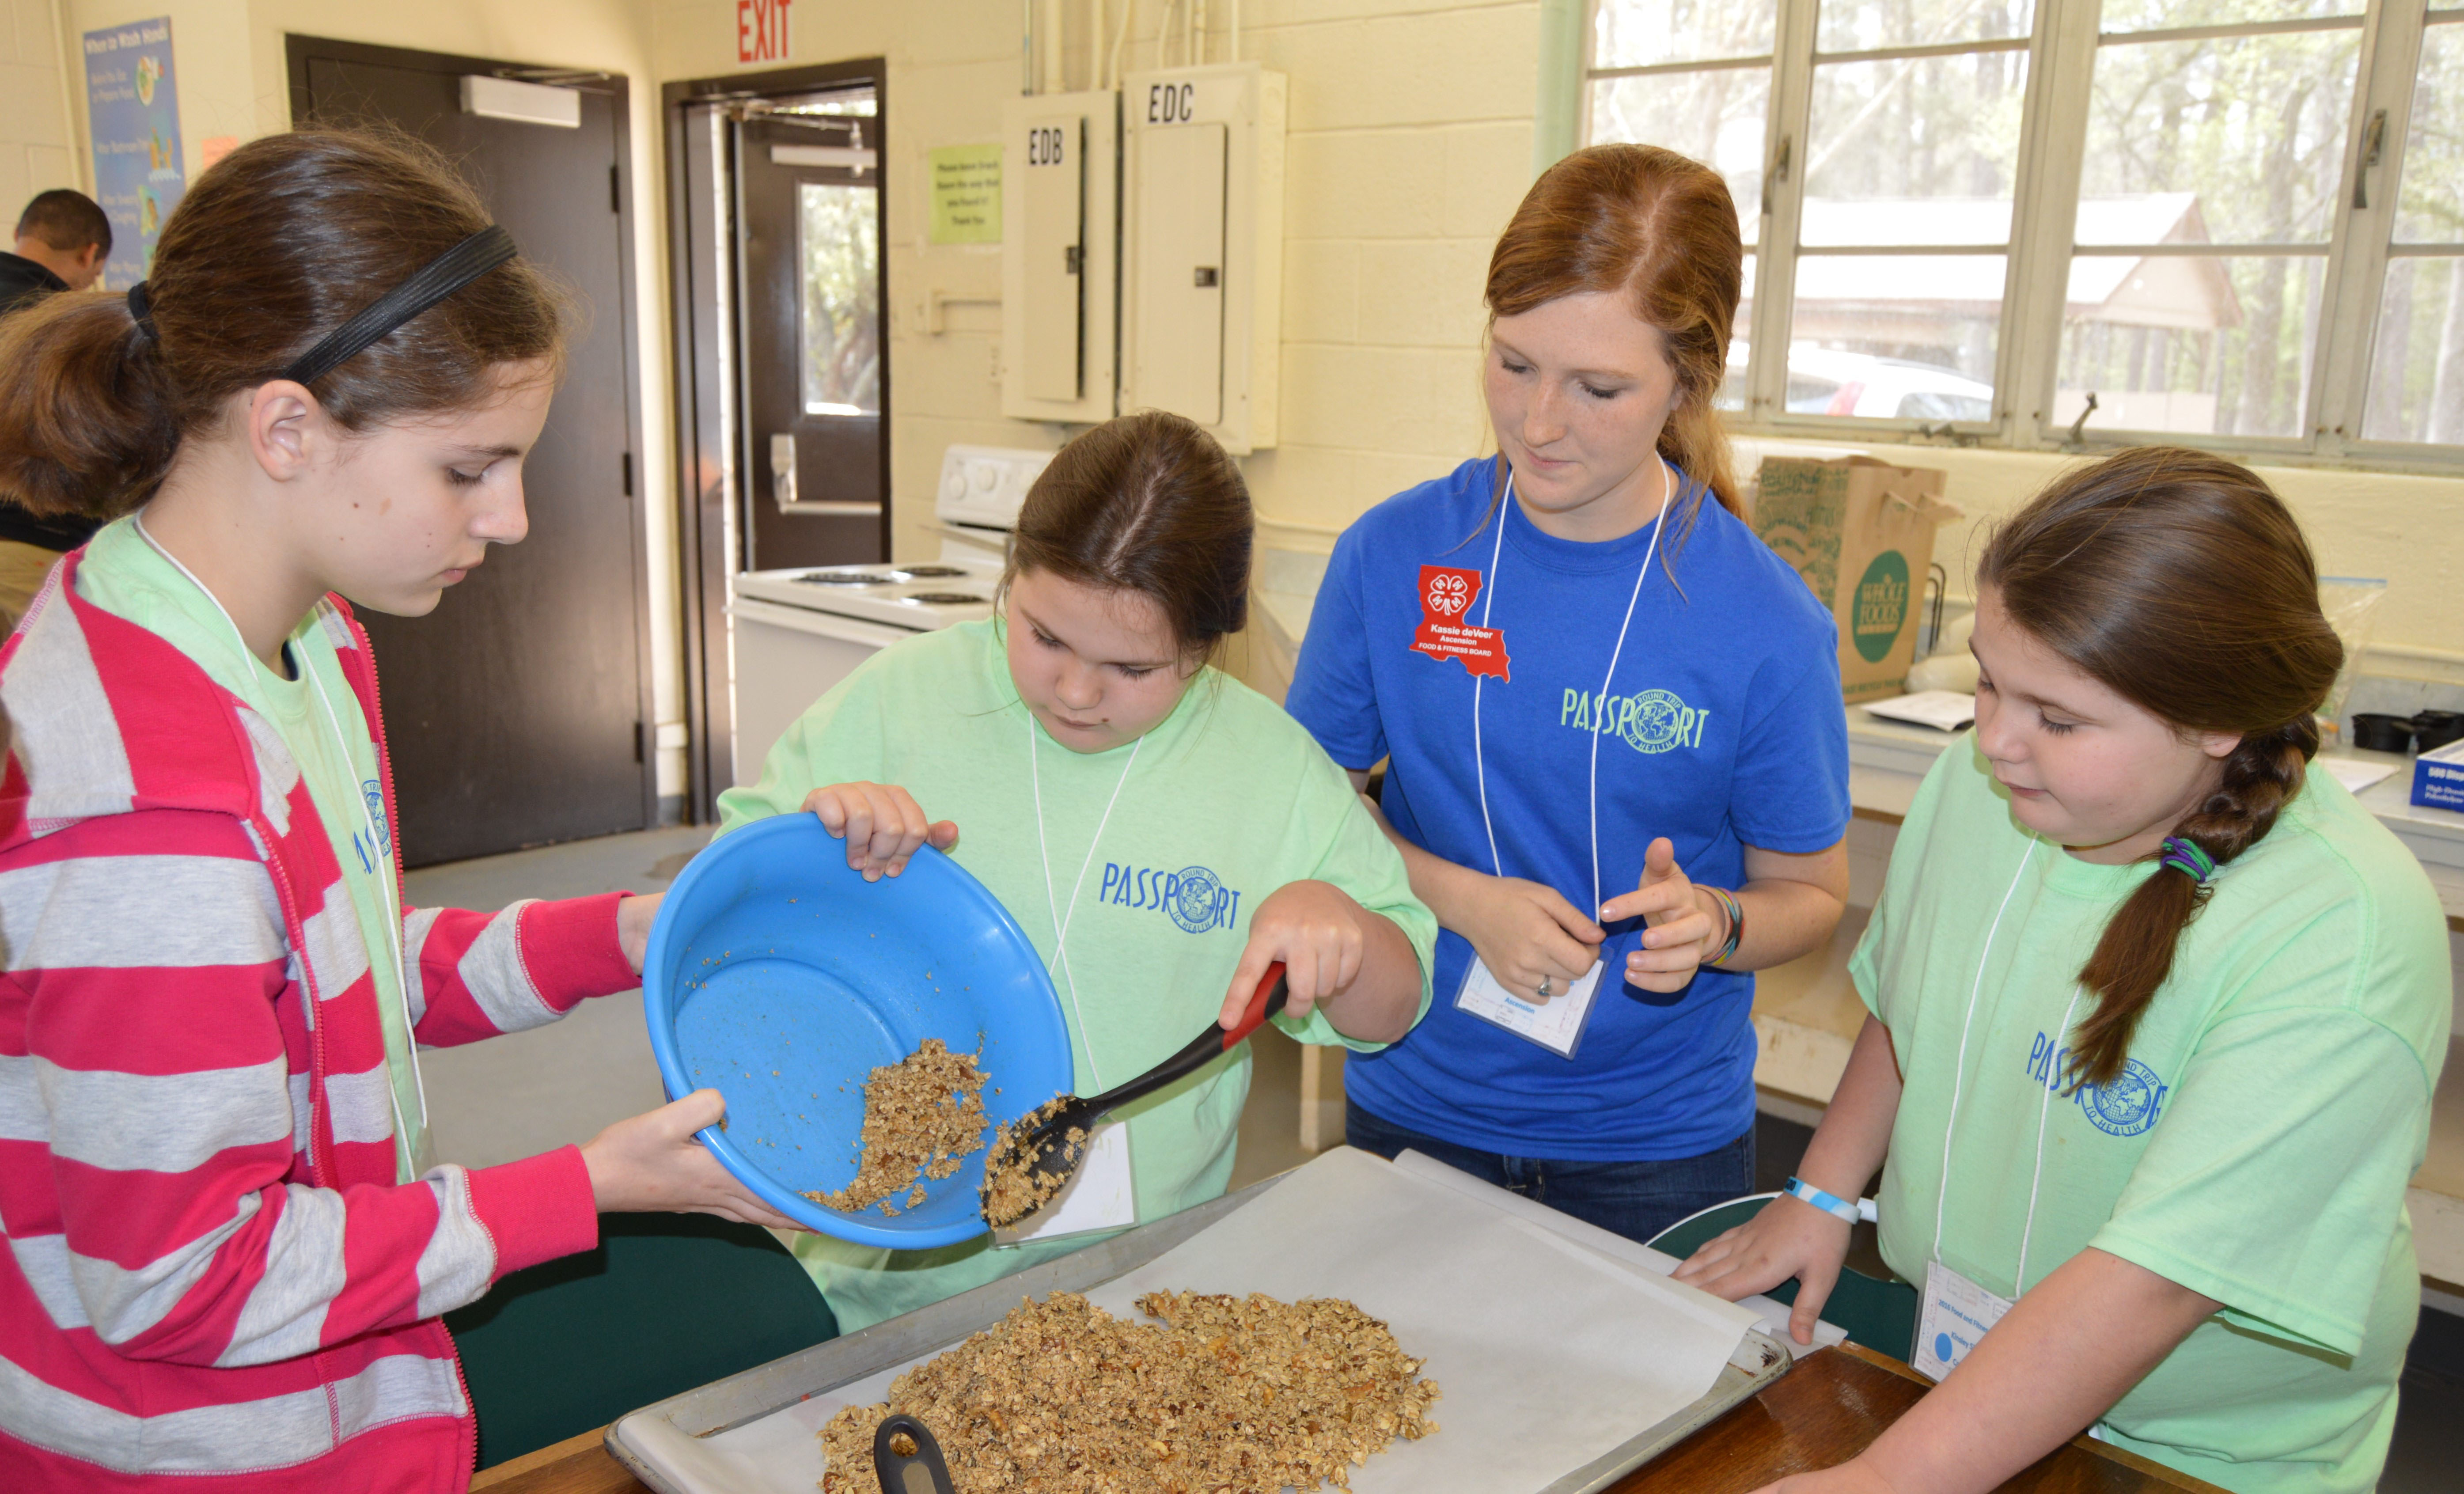 4-H Food and Fitness Camp features family fun, healthy eating